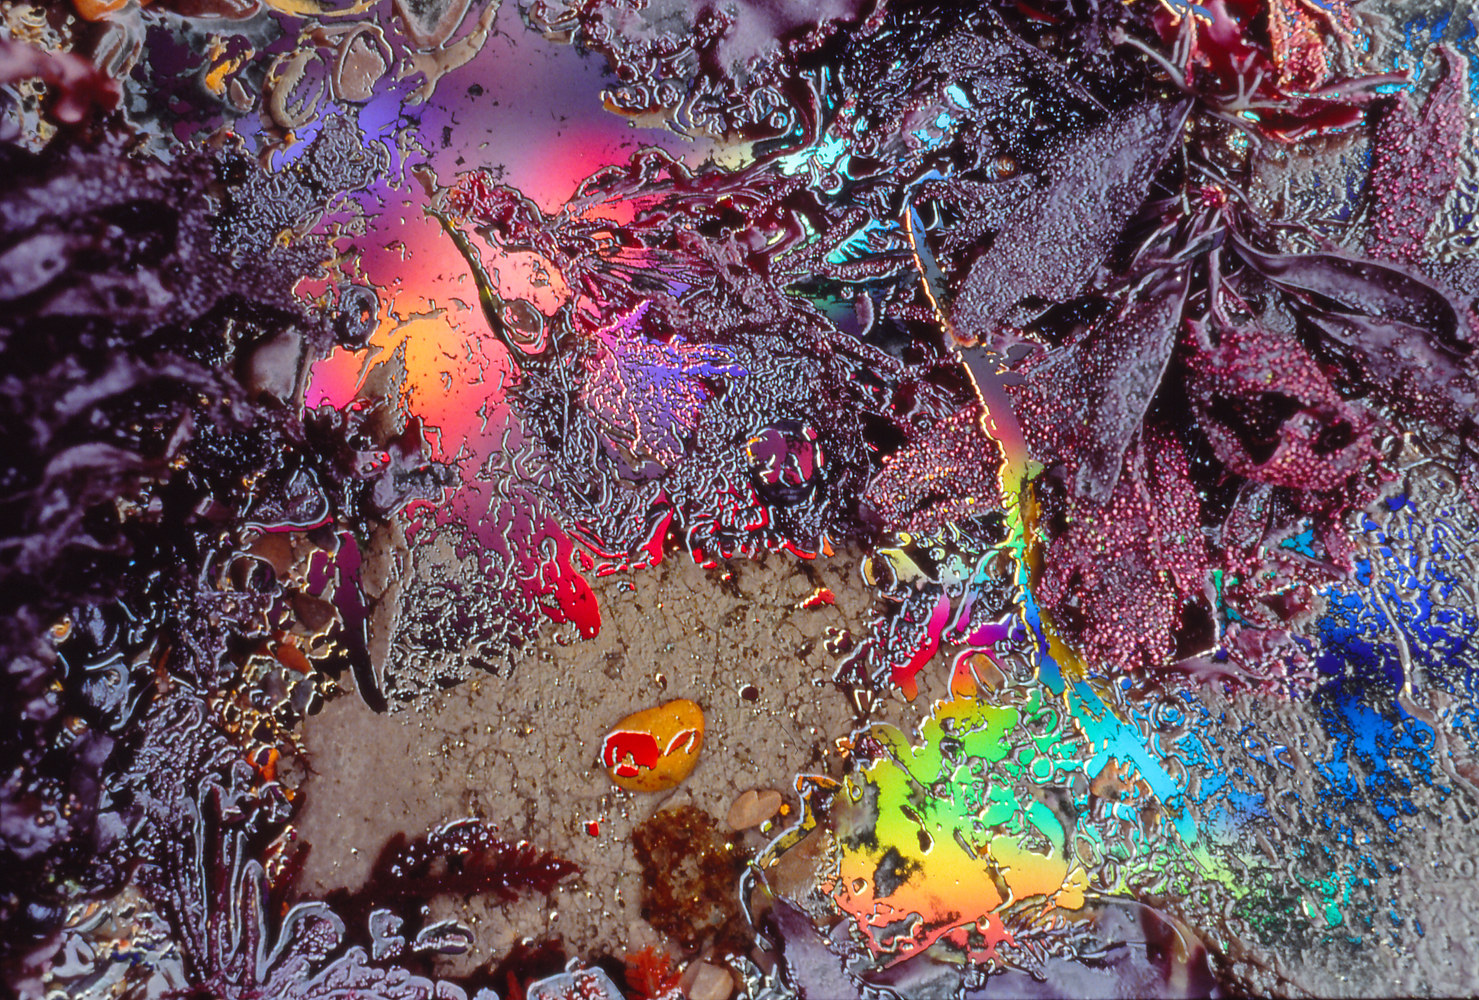 Photography Tidepool Series #11 by Kathleen Gross